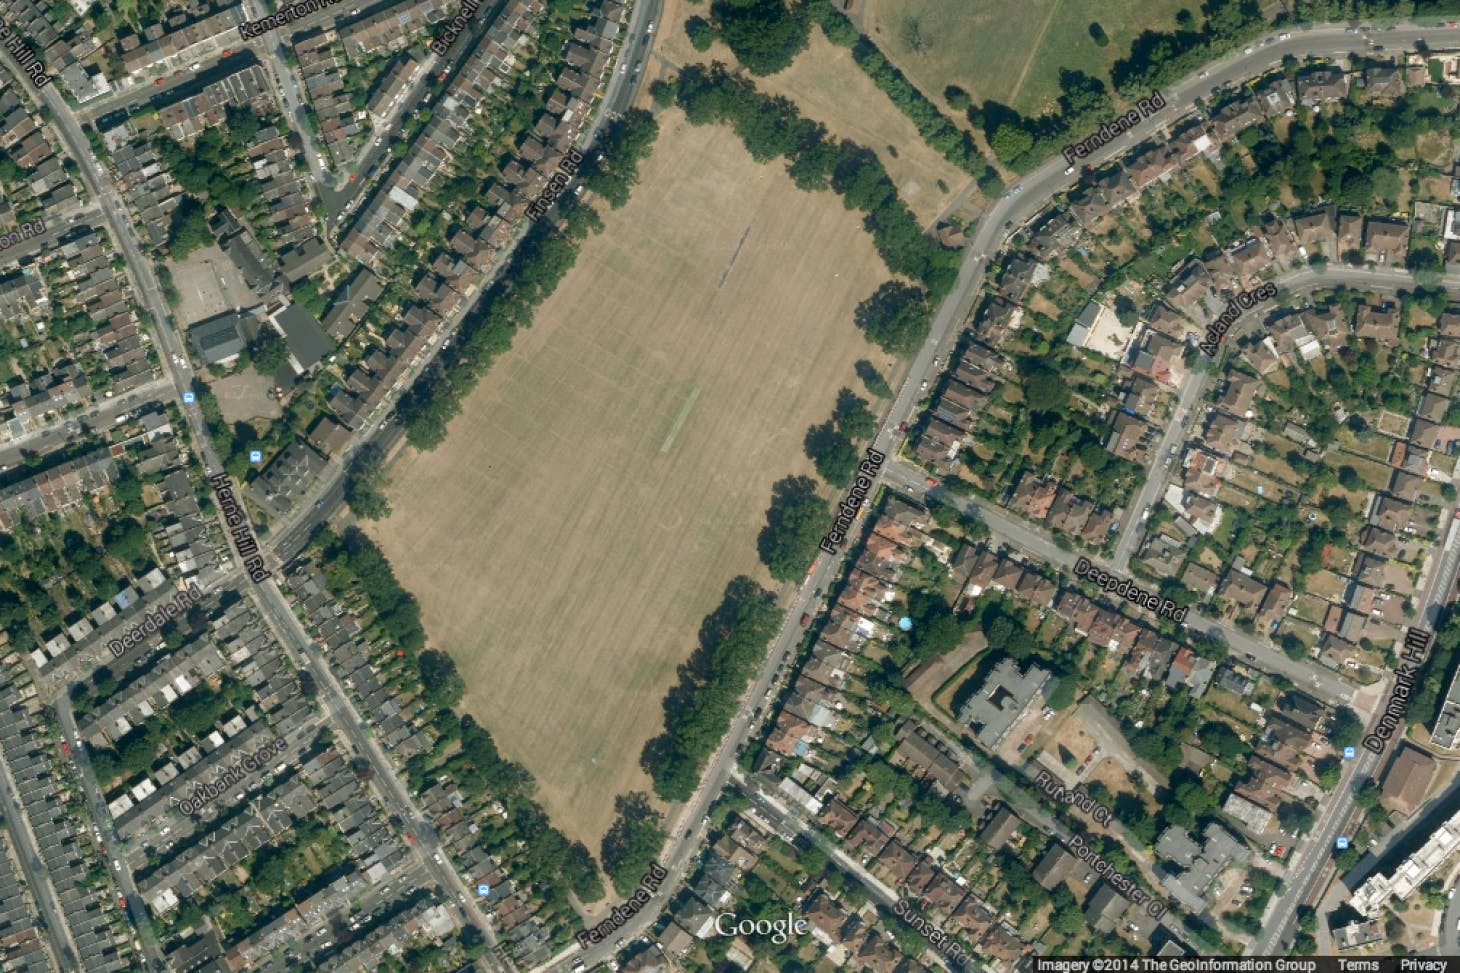 Ruskin Park Union | Grass rugby pitch